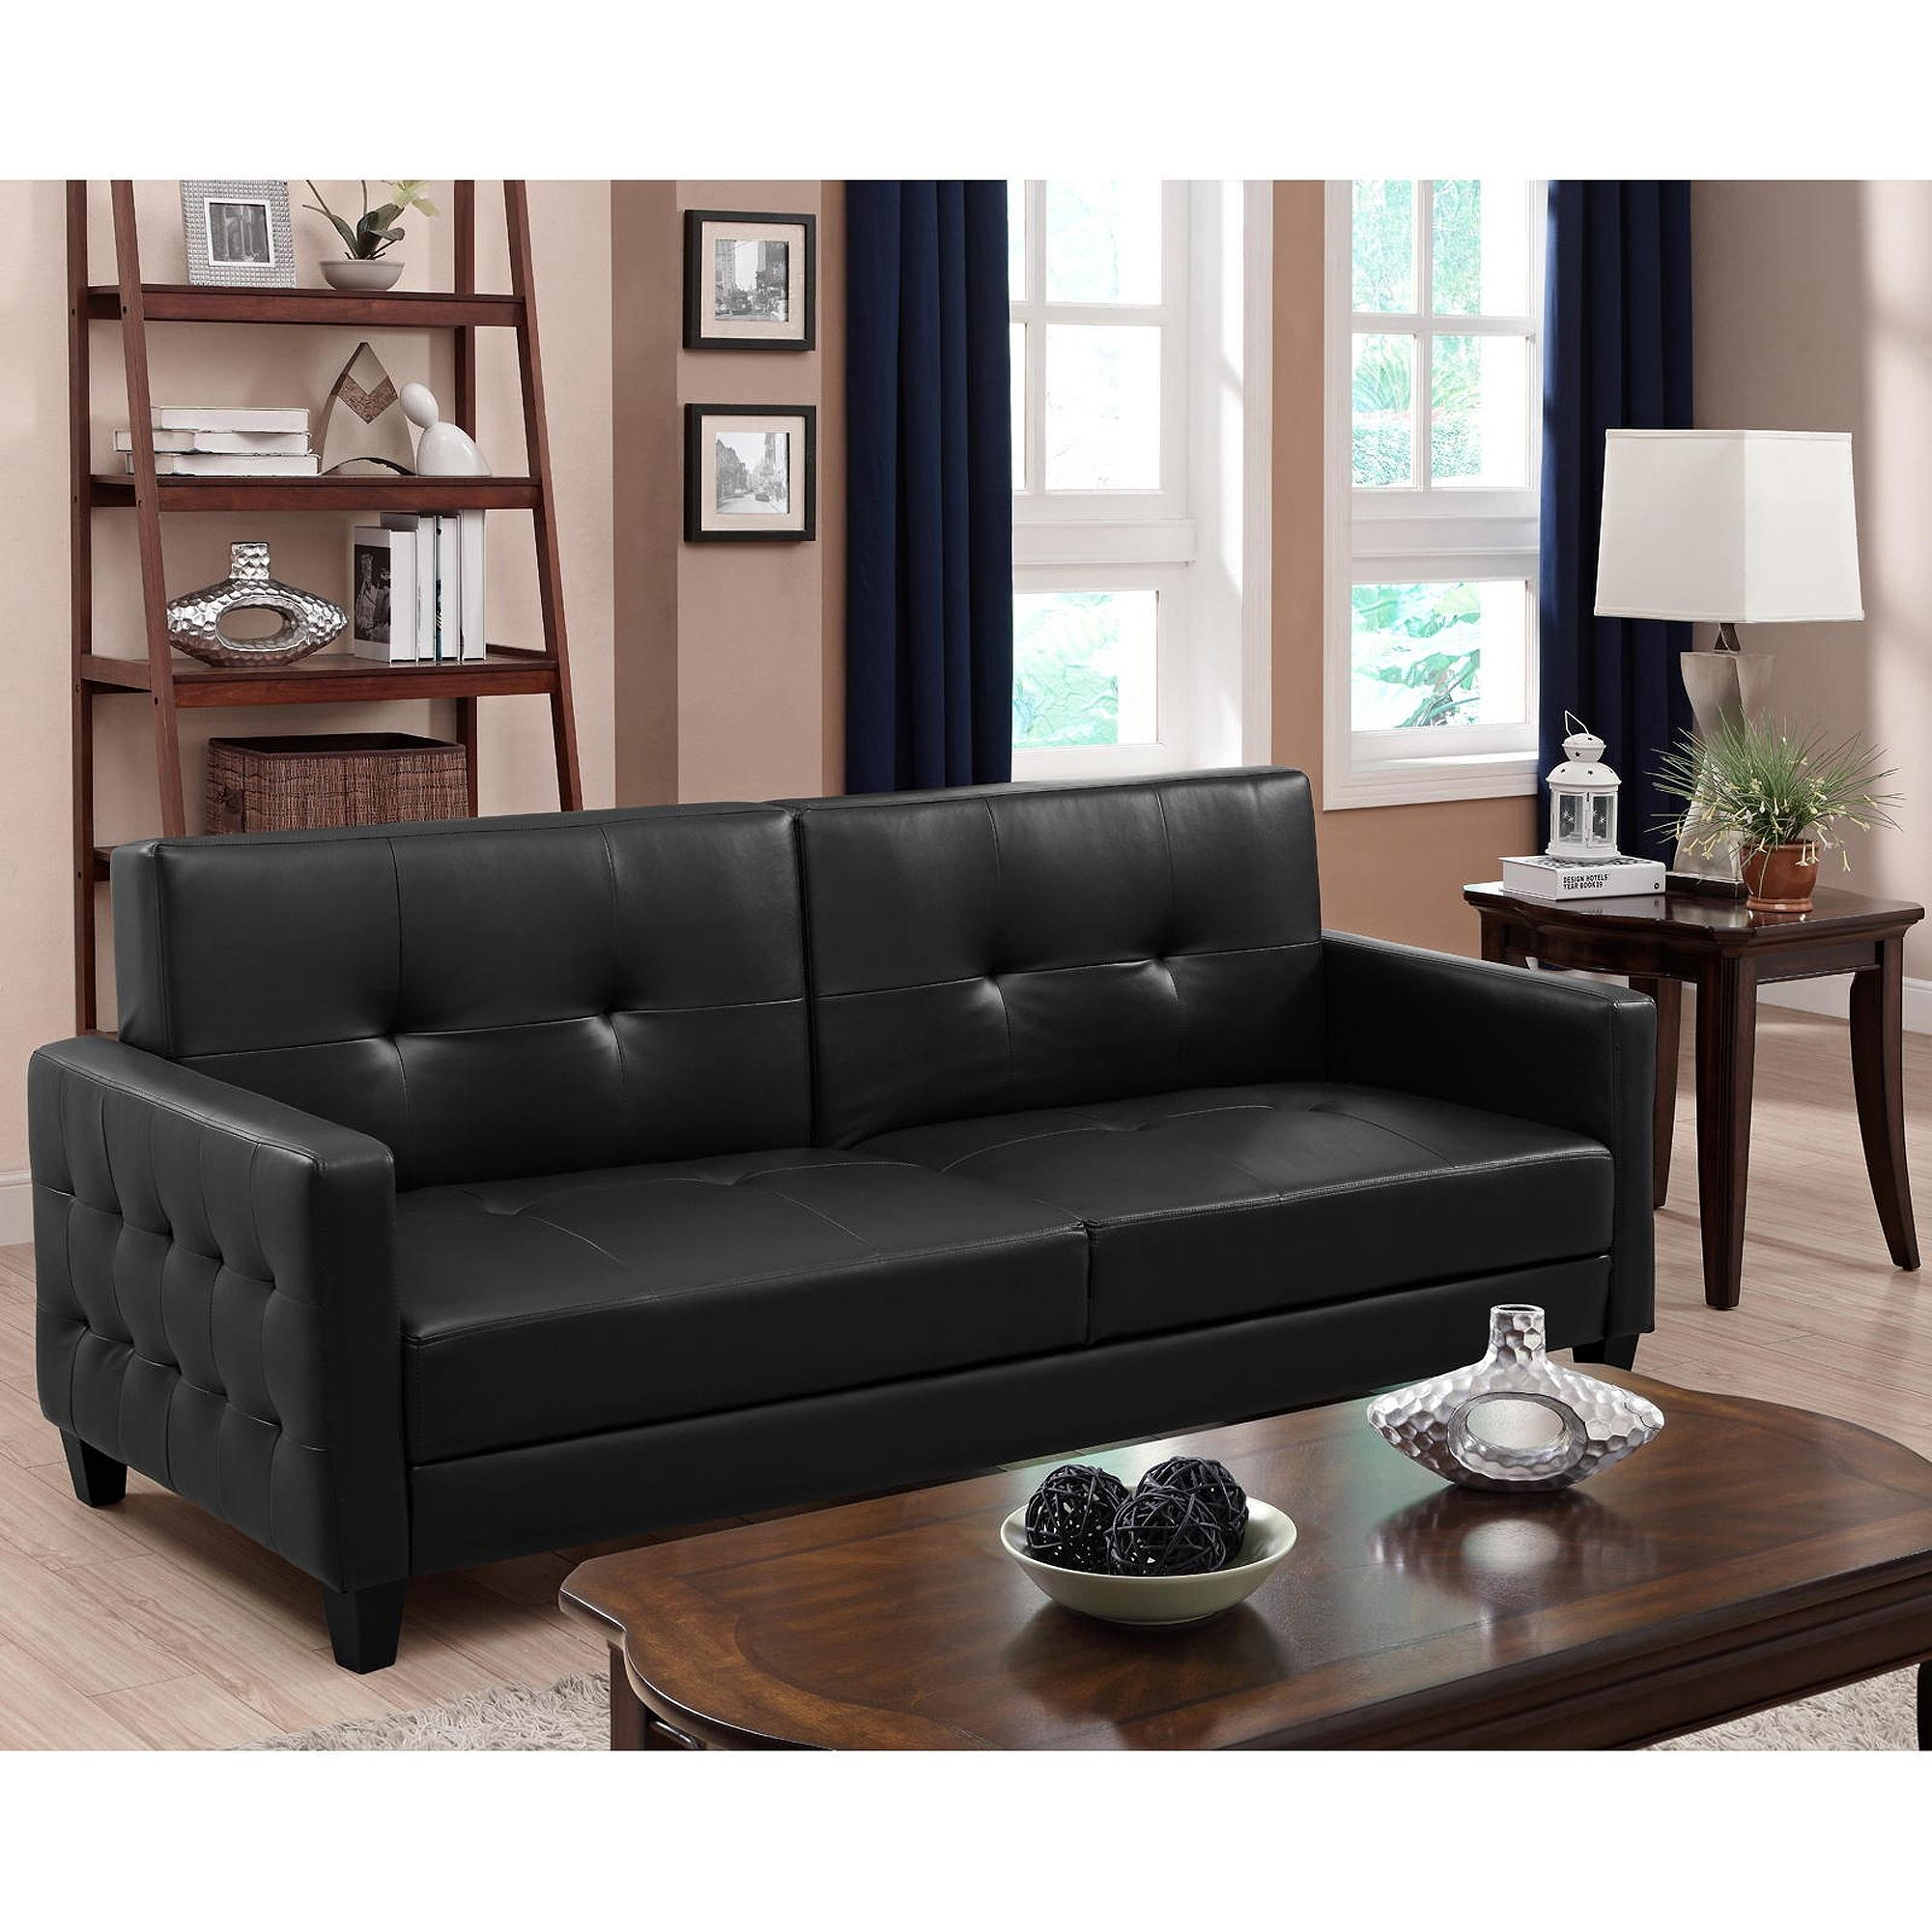 Premium Rome Convertible Futon, Multiple Colors – Walmart Within Black Leather Convertible Sofas (View 20 of 20)